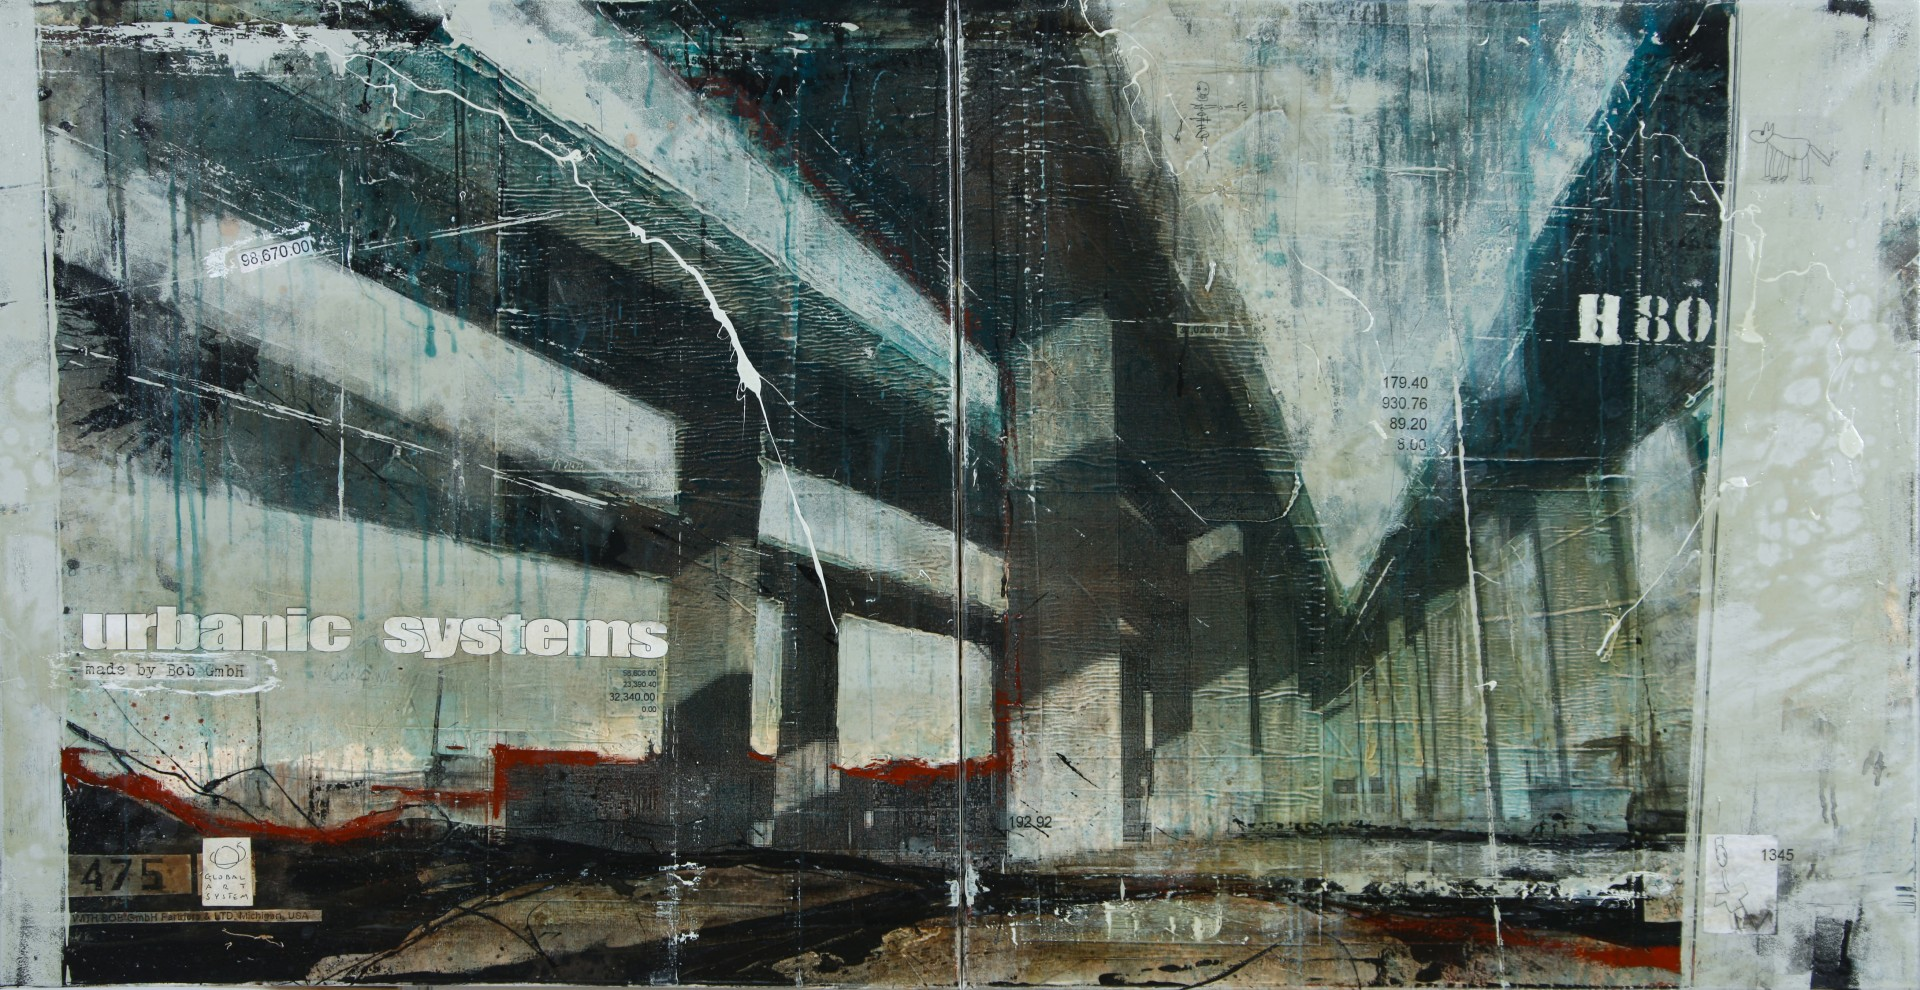 Interchanges - Los Angeles (USA) - collage photo, huile, acrylique sur toile - 80 x 120 cm - 2012